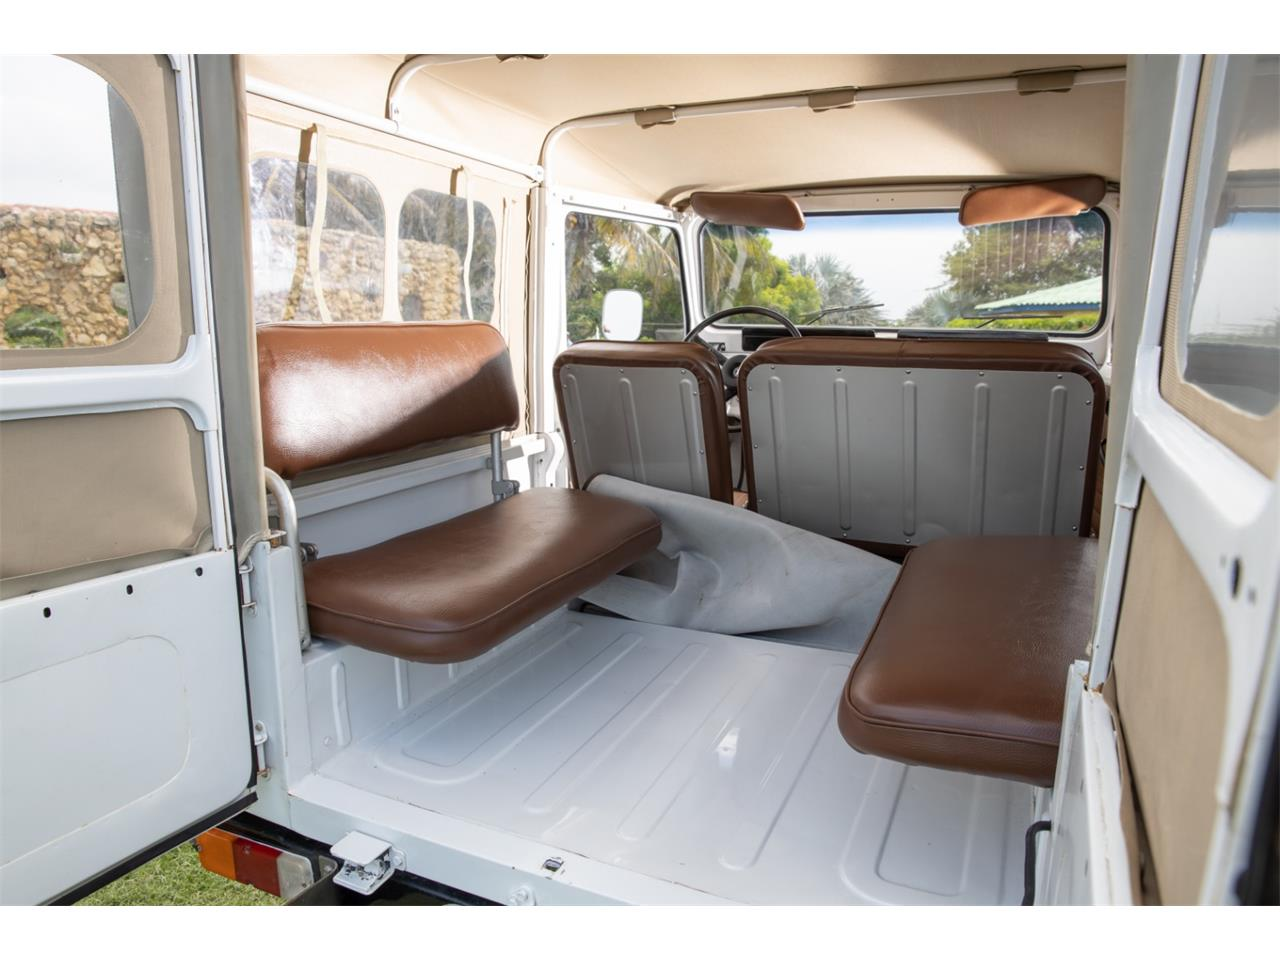 Large Picture of 1977 Toyota Land Cruiser FJ40 - $44,000.00 Offered by a Private Seller - QHFH